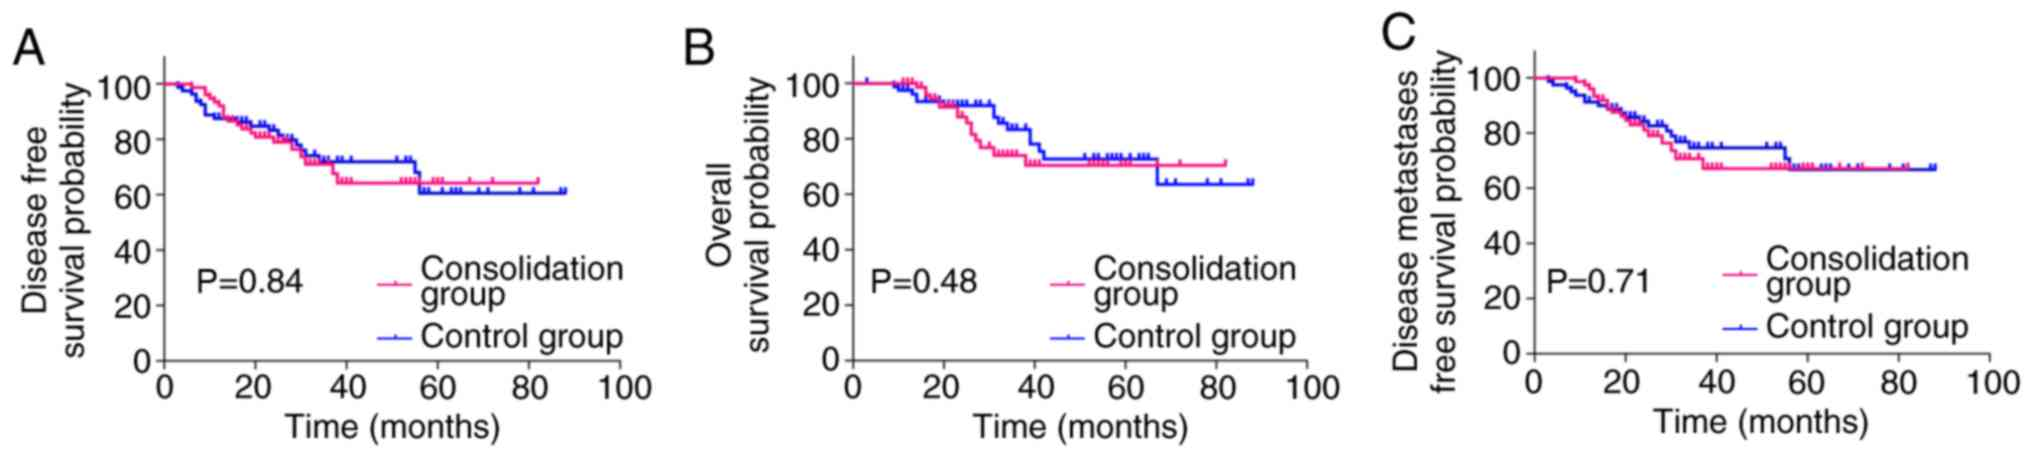 Efficacy And Safety Of Consolidation Chemotherapy During The Resting Period In Patients With Local Advanced Rectal Cancer